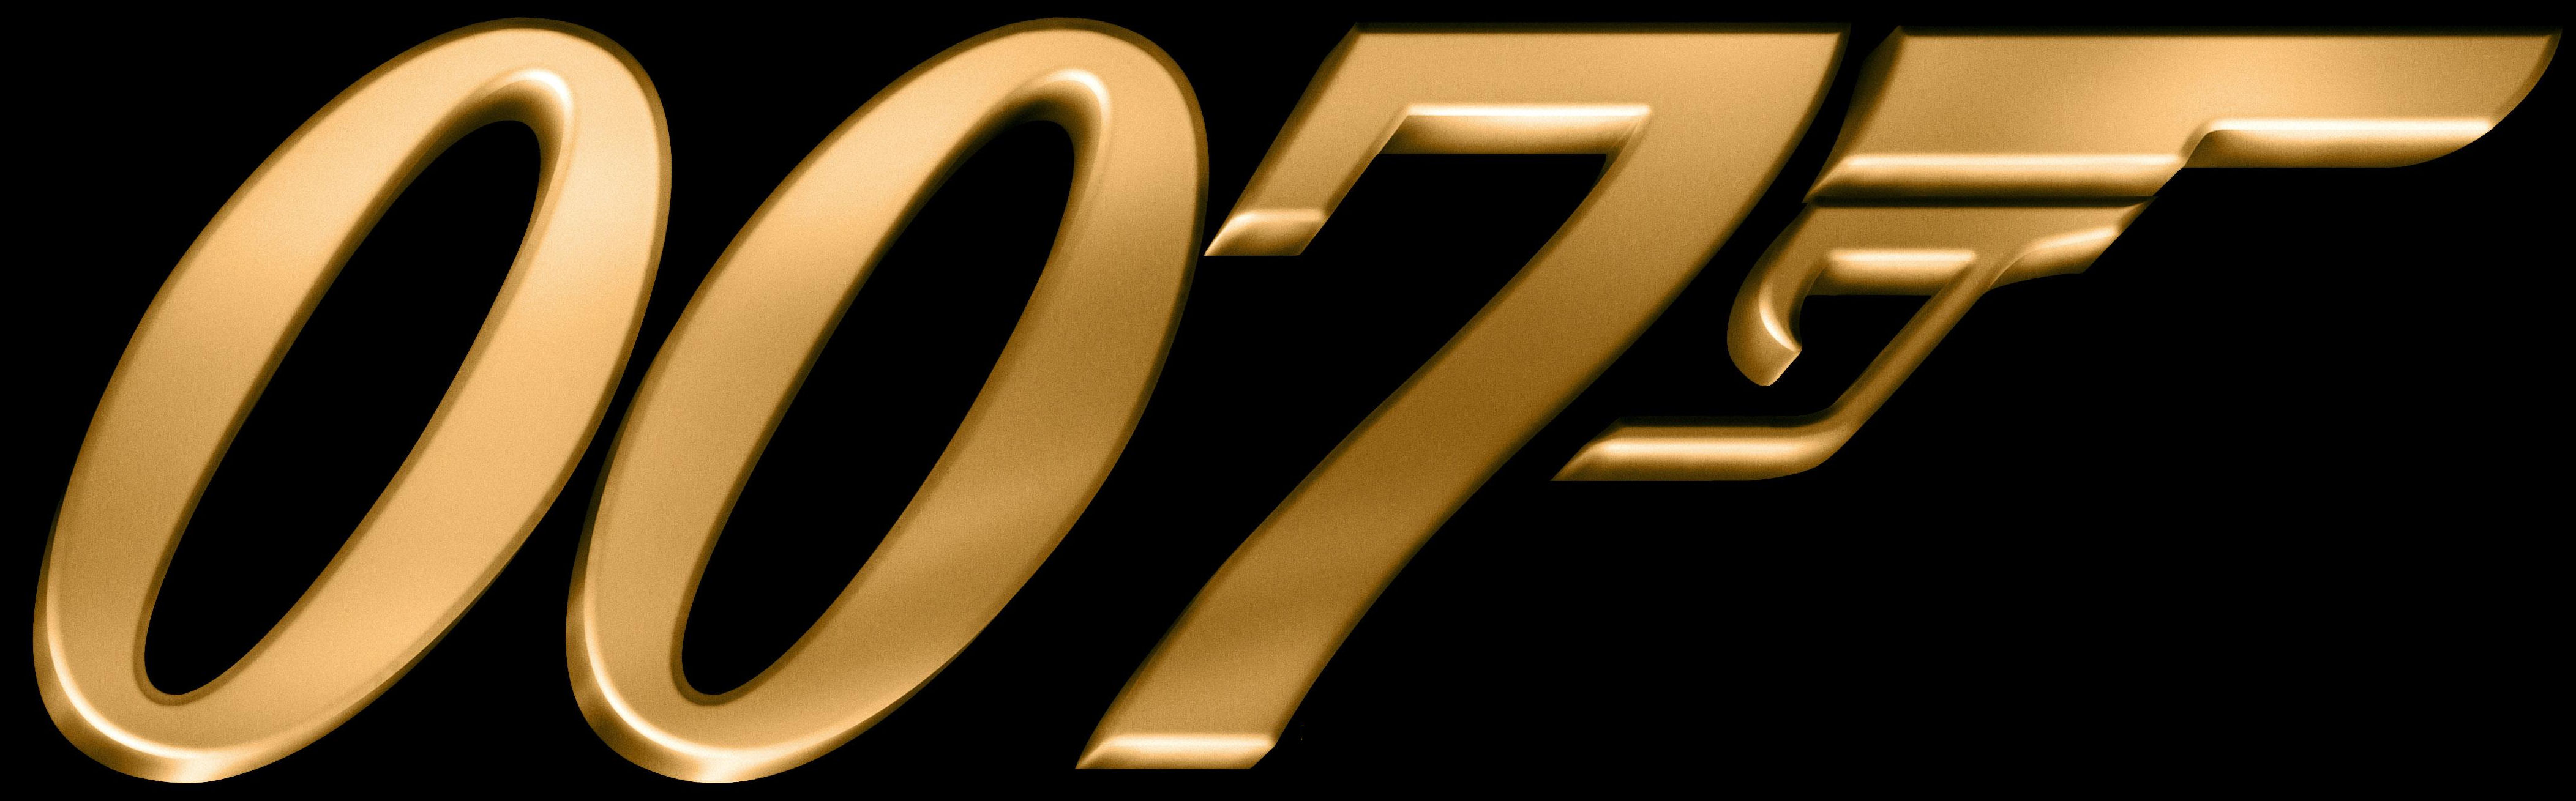 007 Logo Wallpaper Images Crazy Gallery 4208x1309